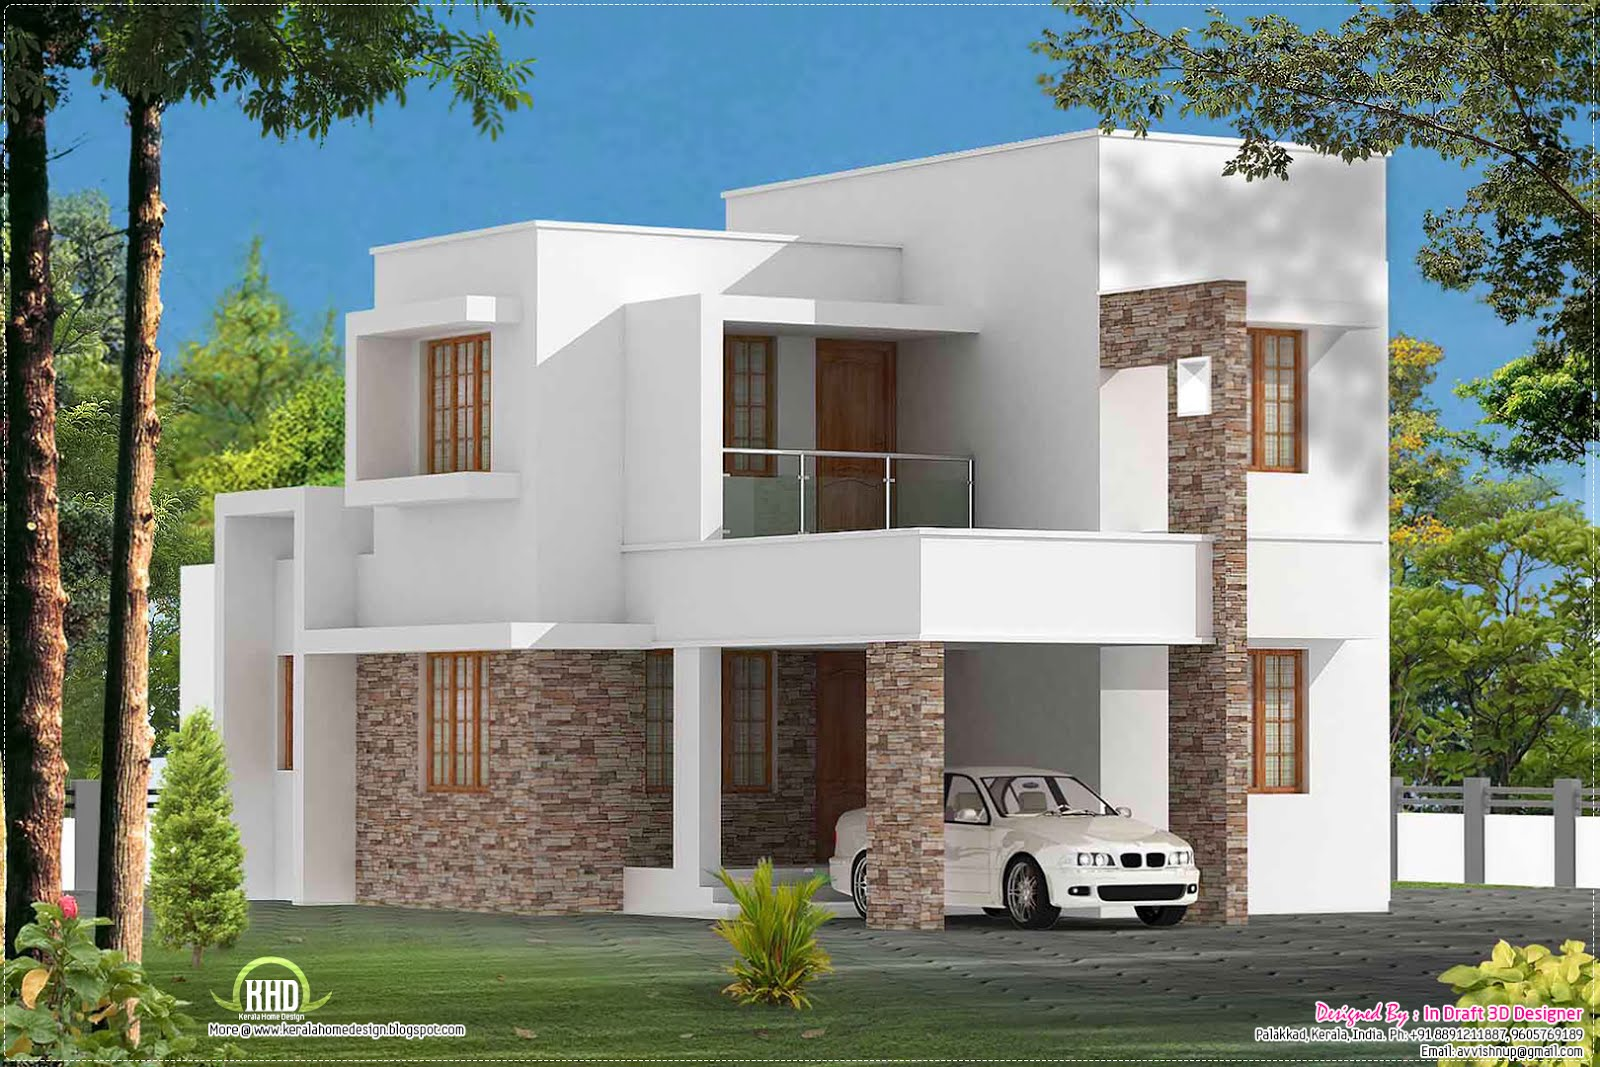 Simple 3 bed room contemporary villa Kerala home design and